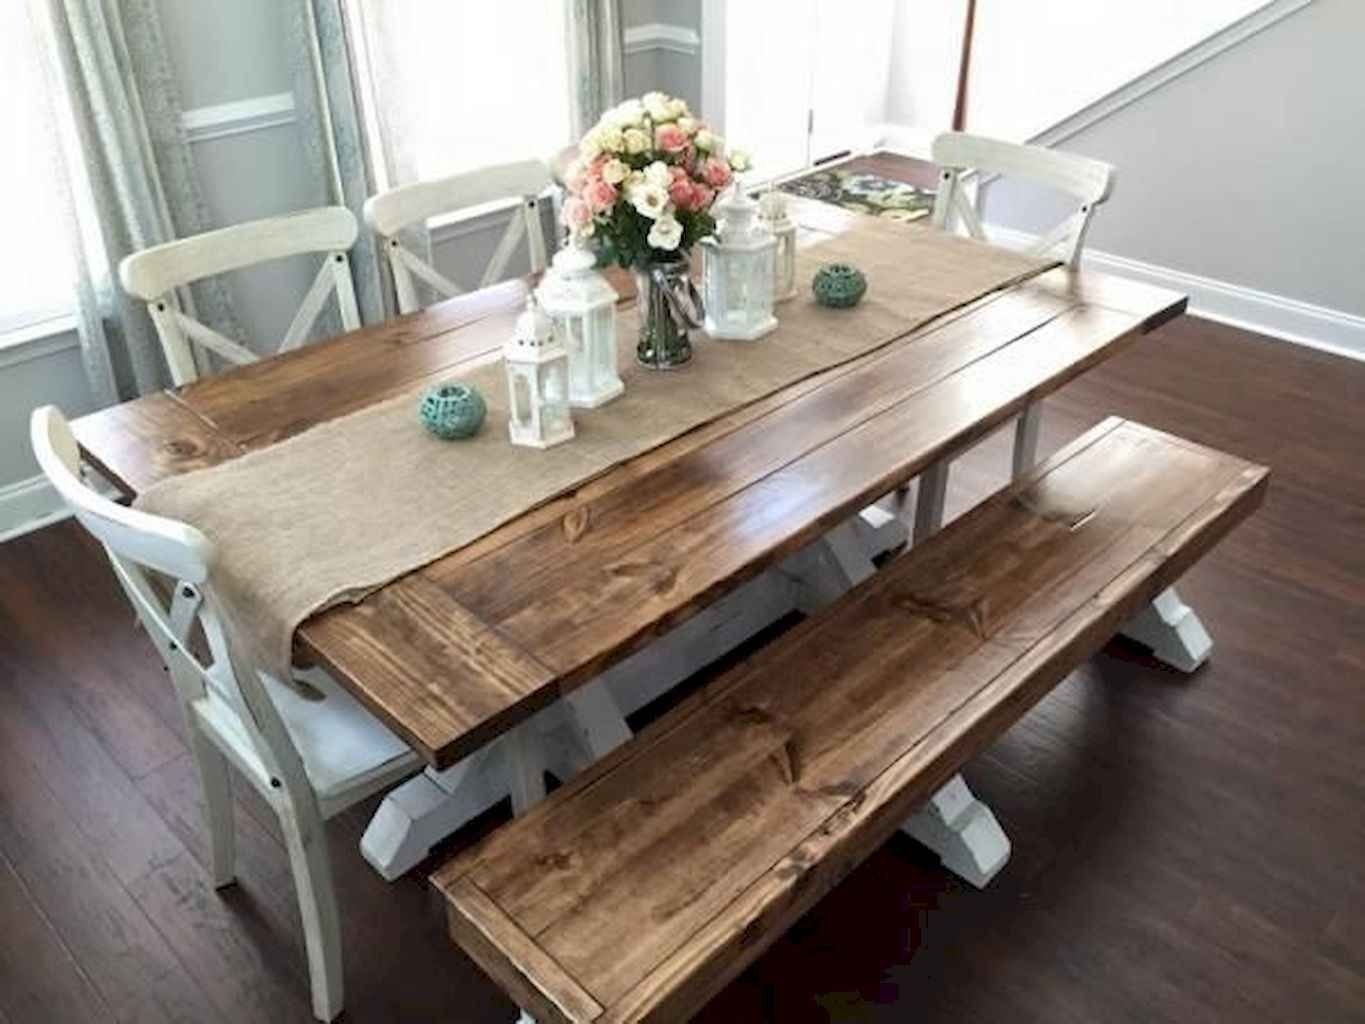 Kitchen Table Makeover Farmhouse + Kitchen Table Makeover#farmhouse #kitchen #ma...#farmhouse #kitchen #makeover #makeoverfarmhouse #table